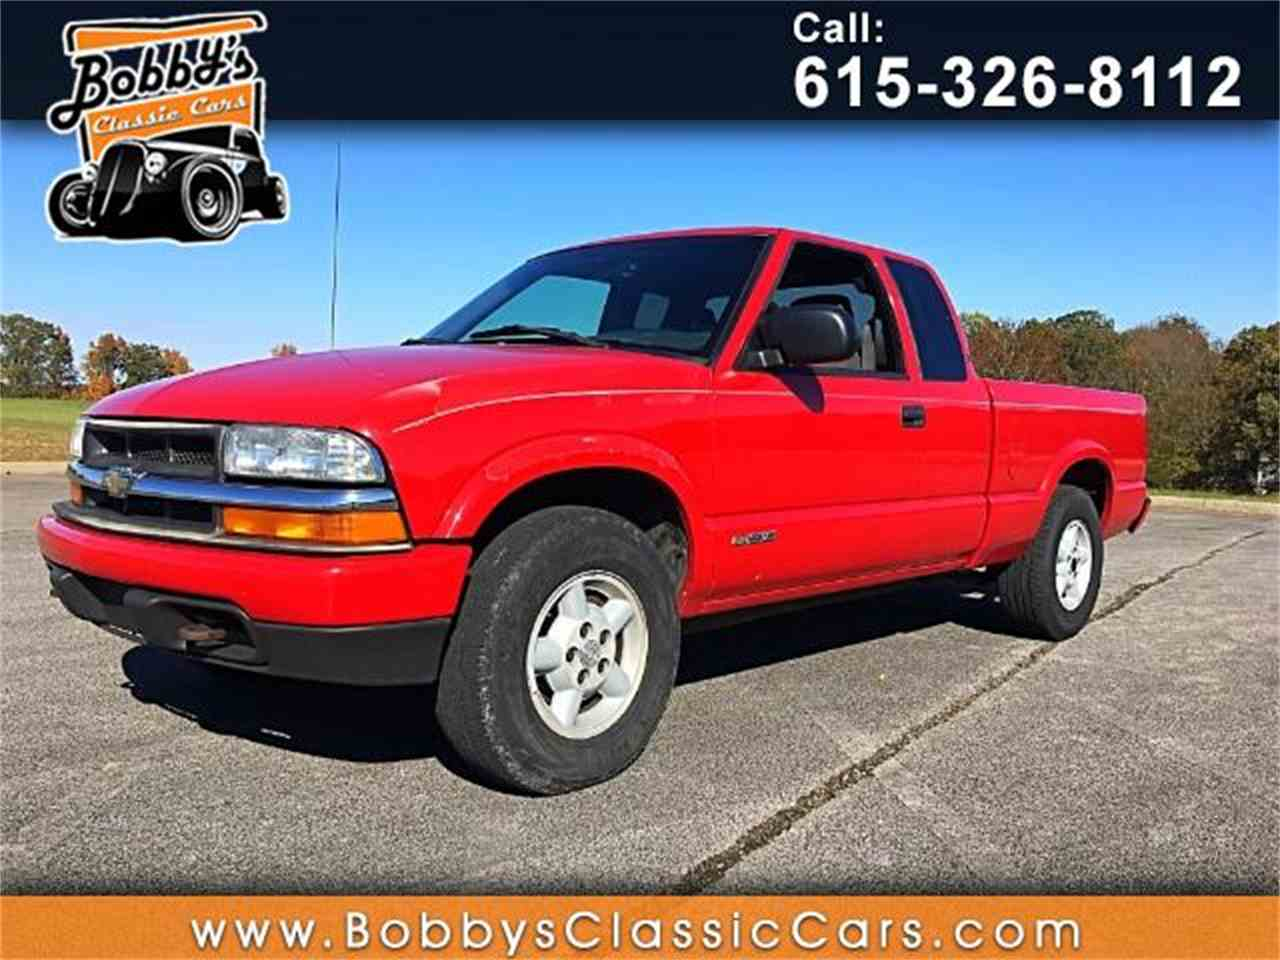 All Chevy 2015 chevrolet s10 : 2002 Chevrolet S10 for Sale | ClassicCars.com | CC-1045656